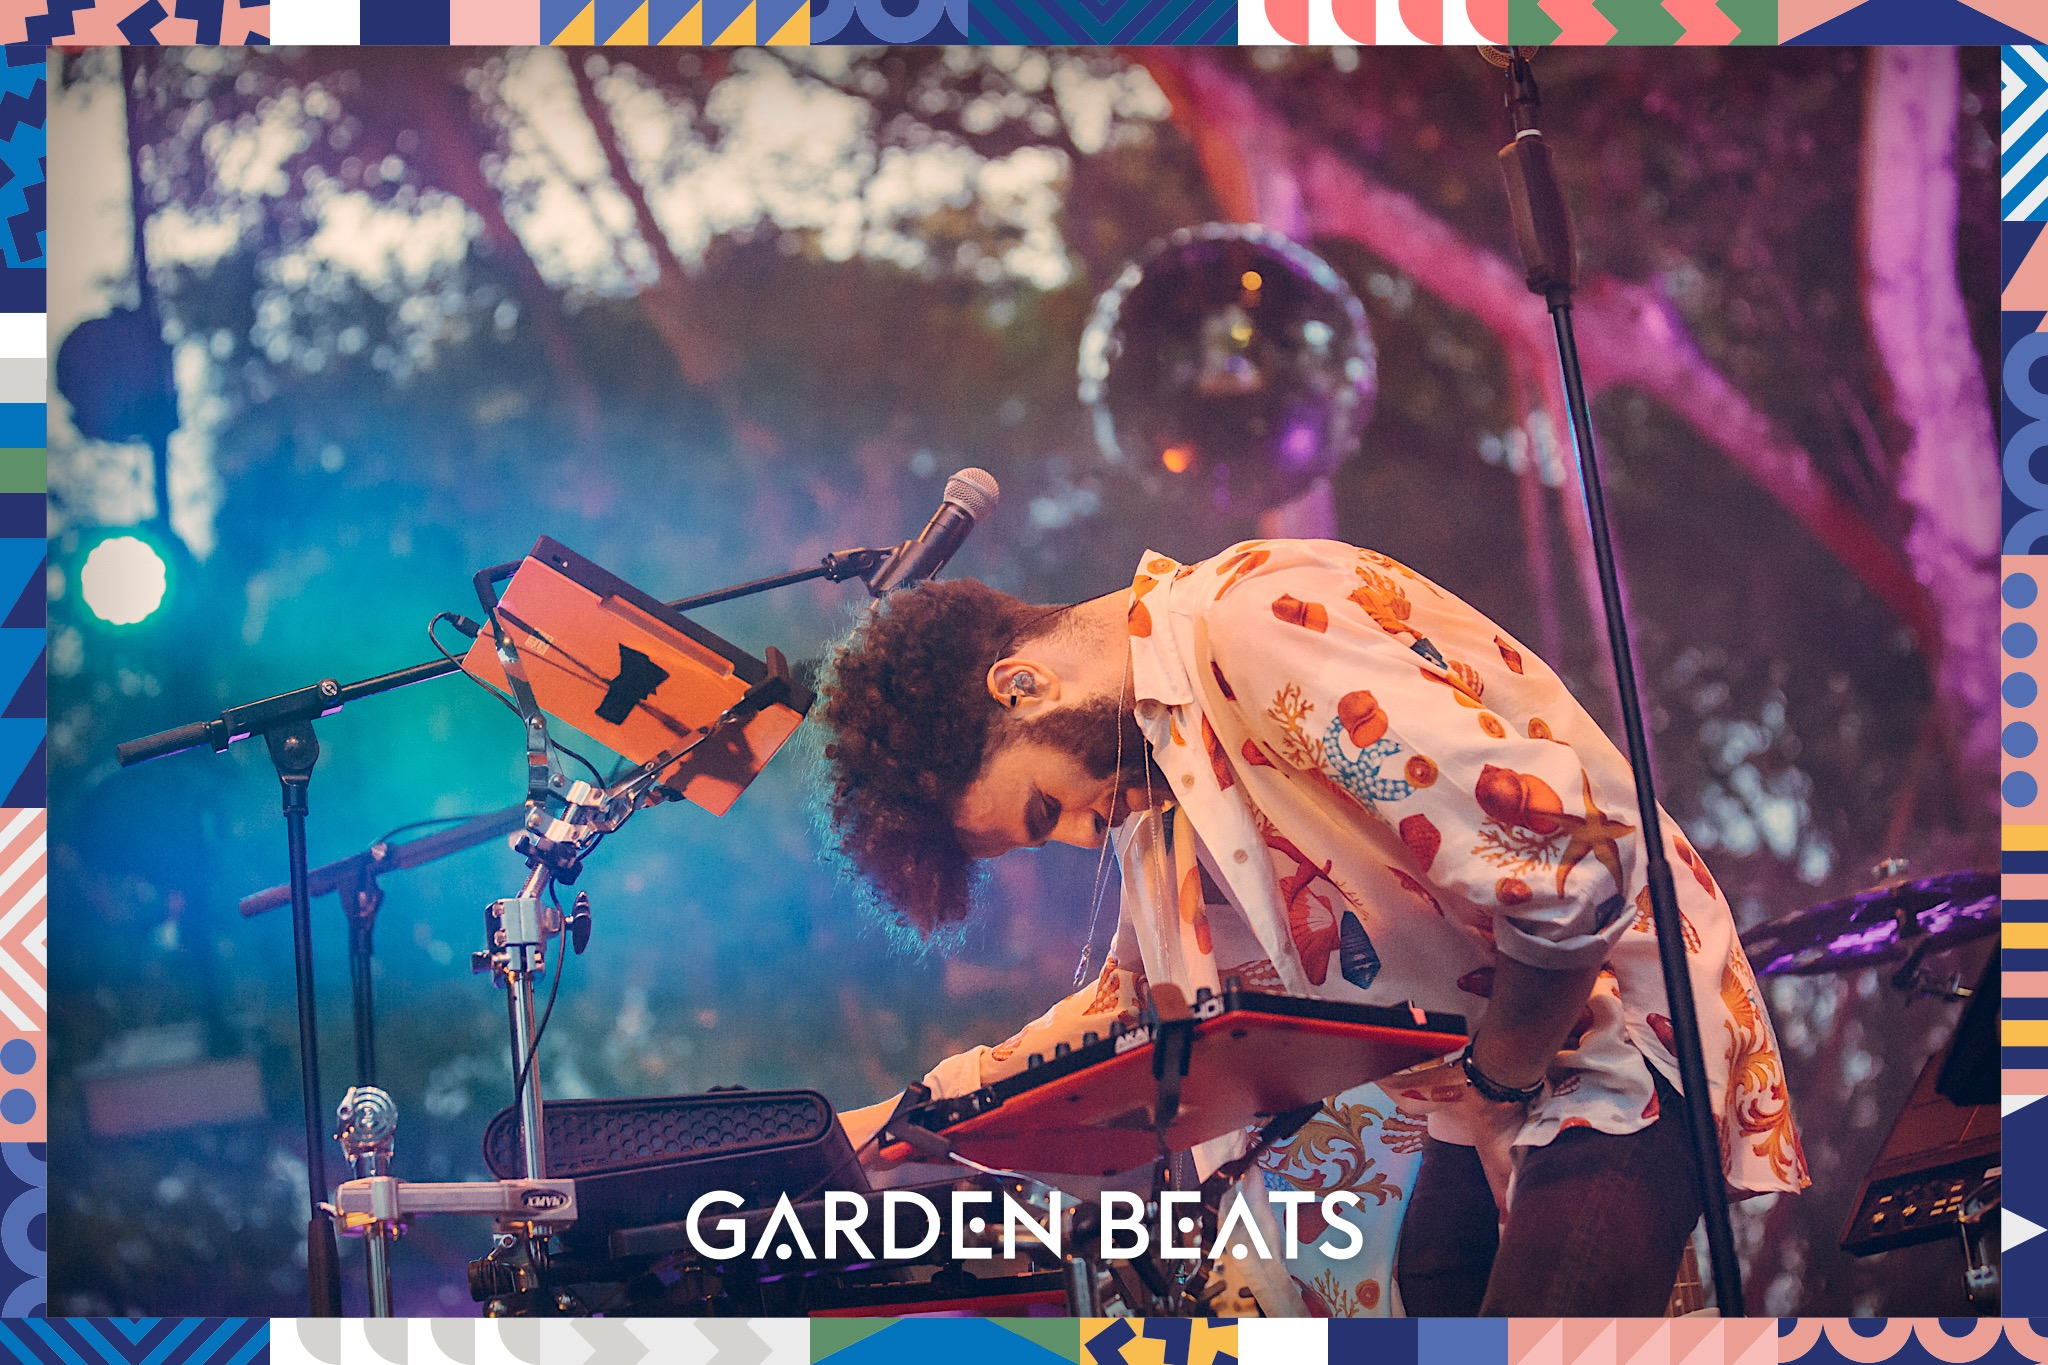 03032018_GardenBeats_Colossal749_Watermarked.jpg